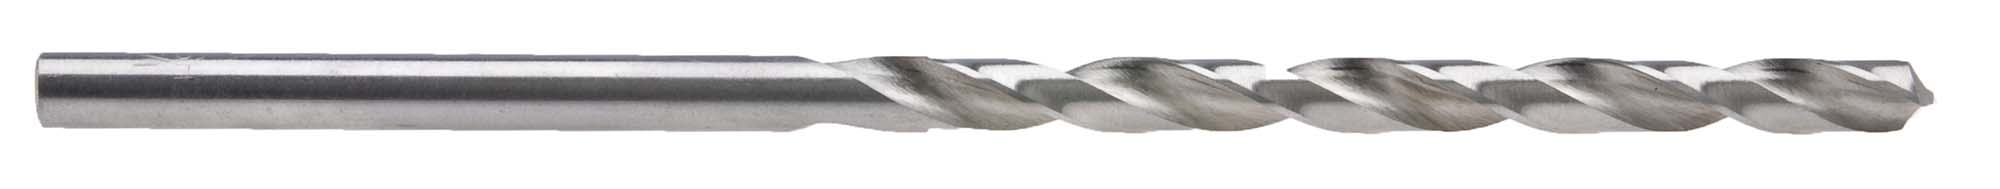 "#1 (.2280"") ""Taper Length"" Long Straight Shank Drill Bit, High Speed Steel"